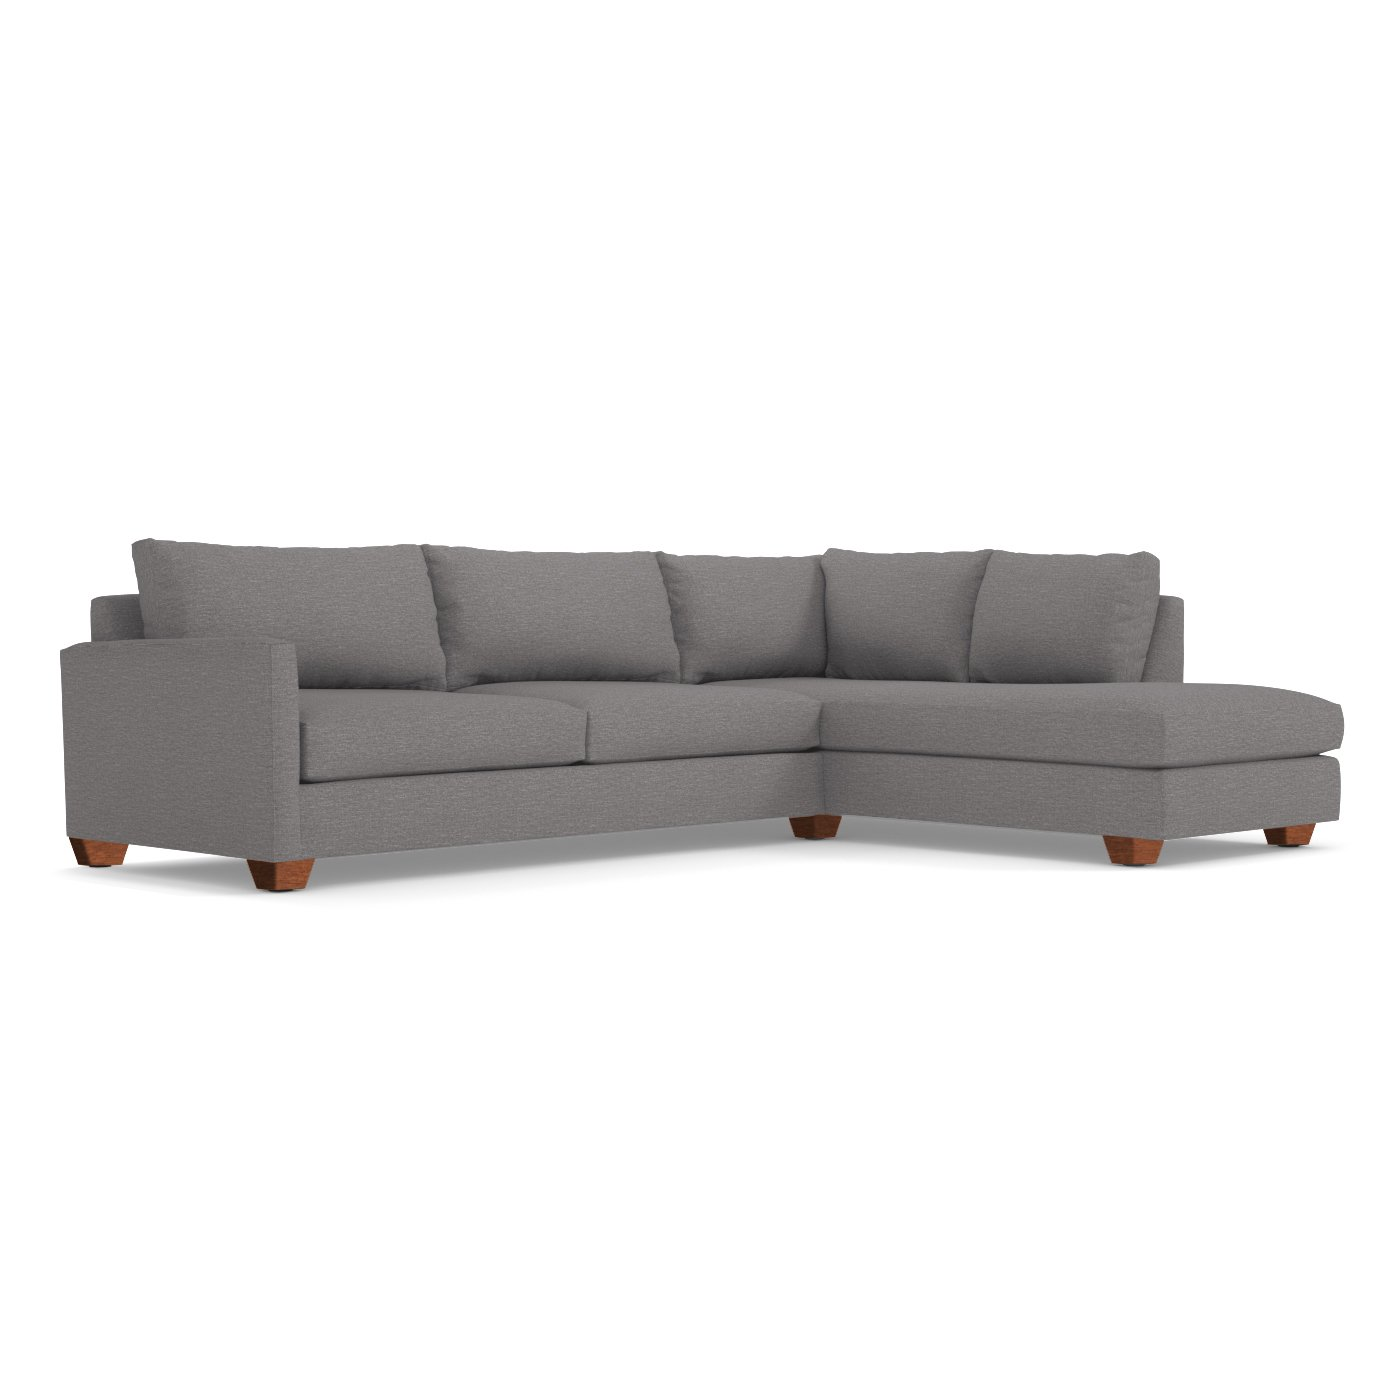 Living Room Furniture Two Piece Sectional Tuxedo Sofa – Apt2B